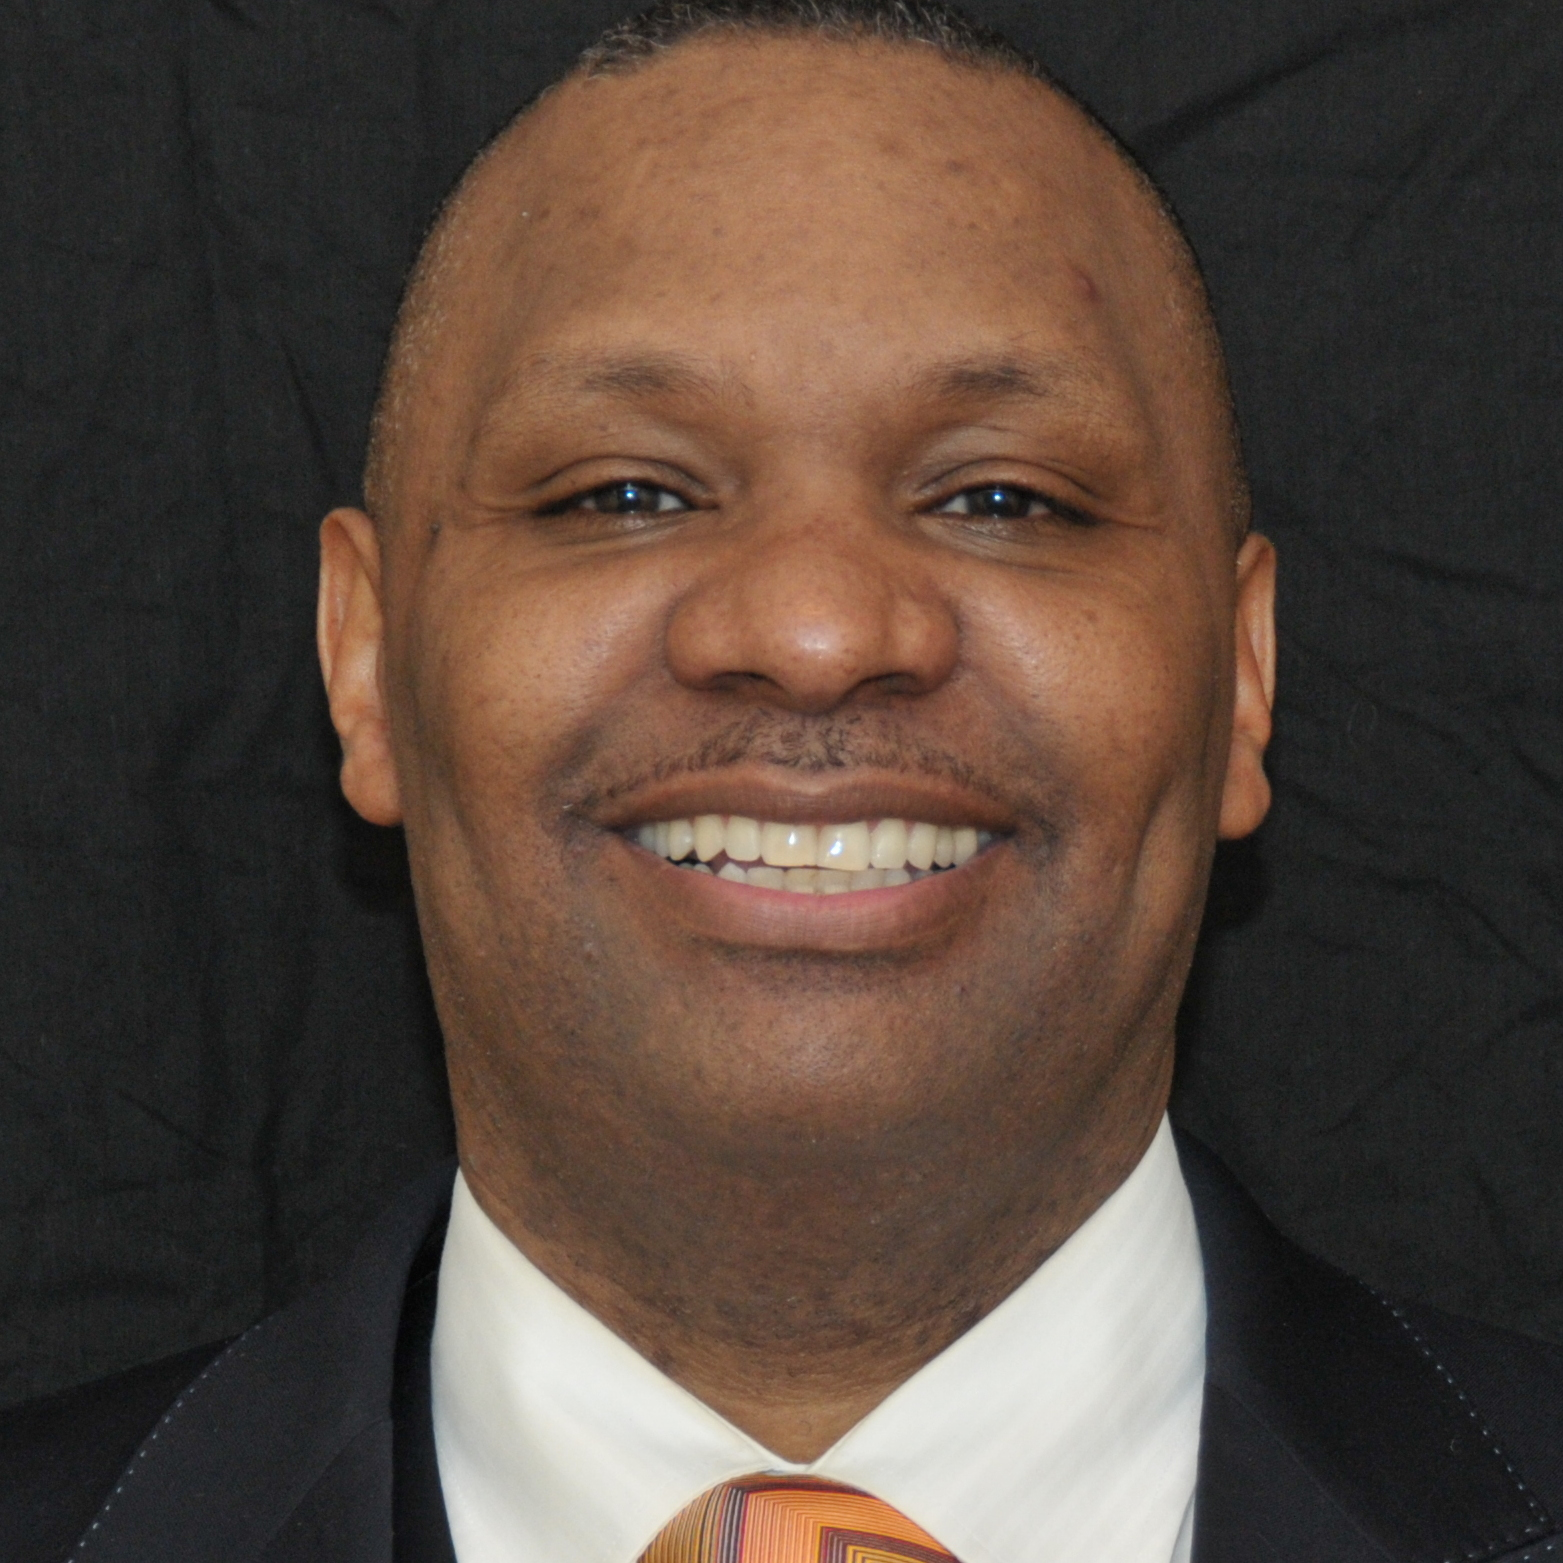 Dr. Darryl K. Webster